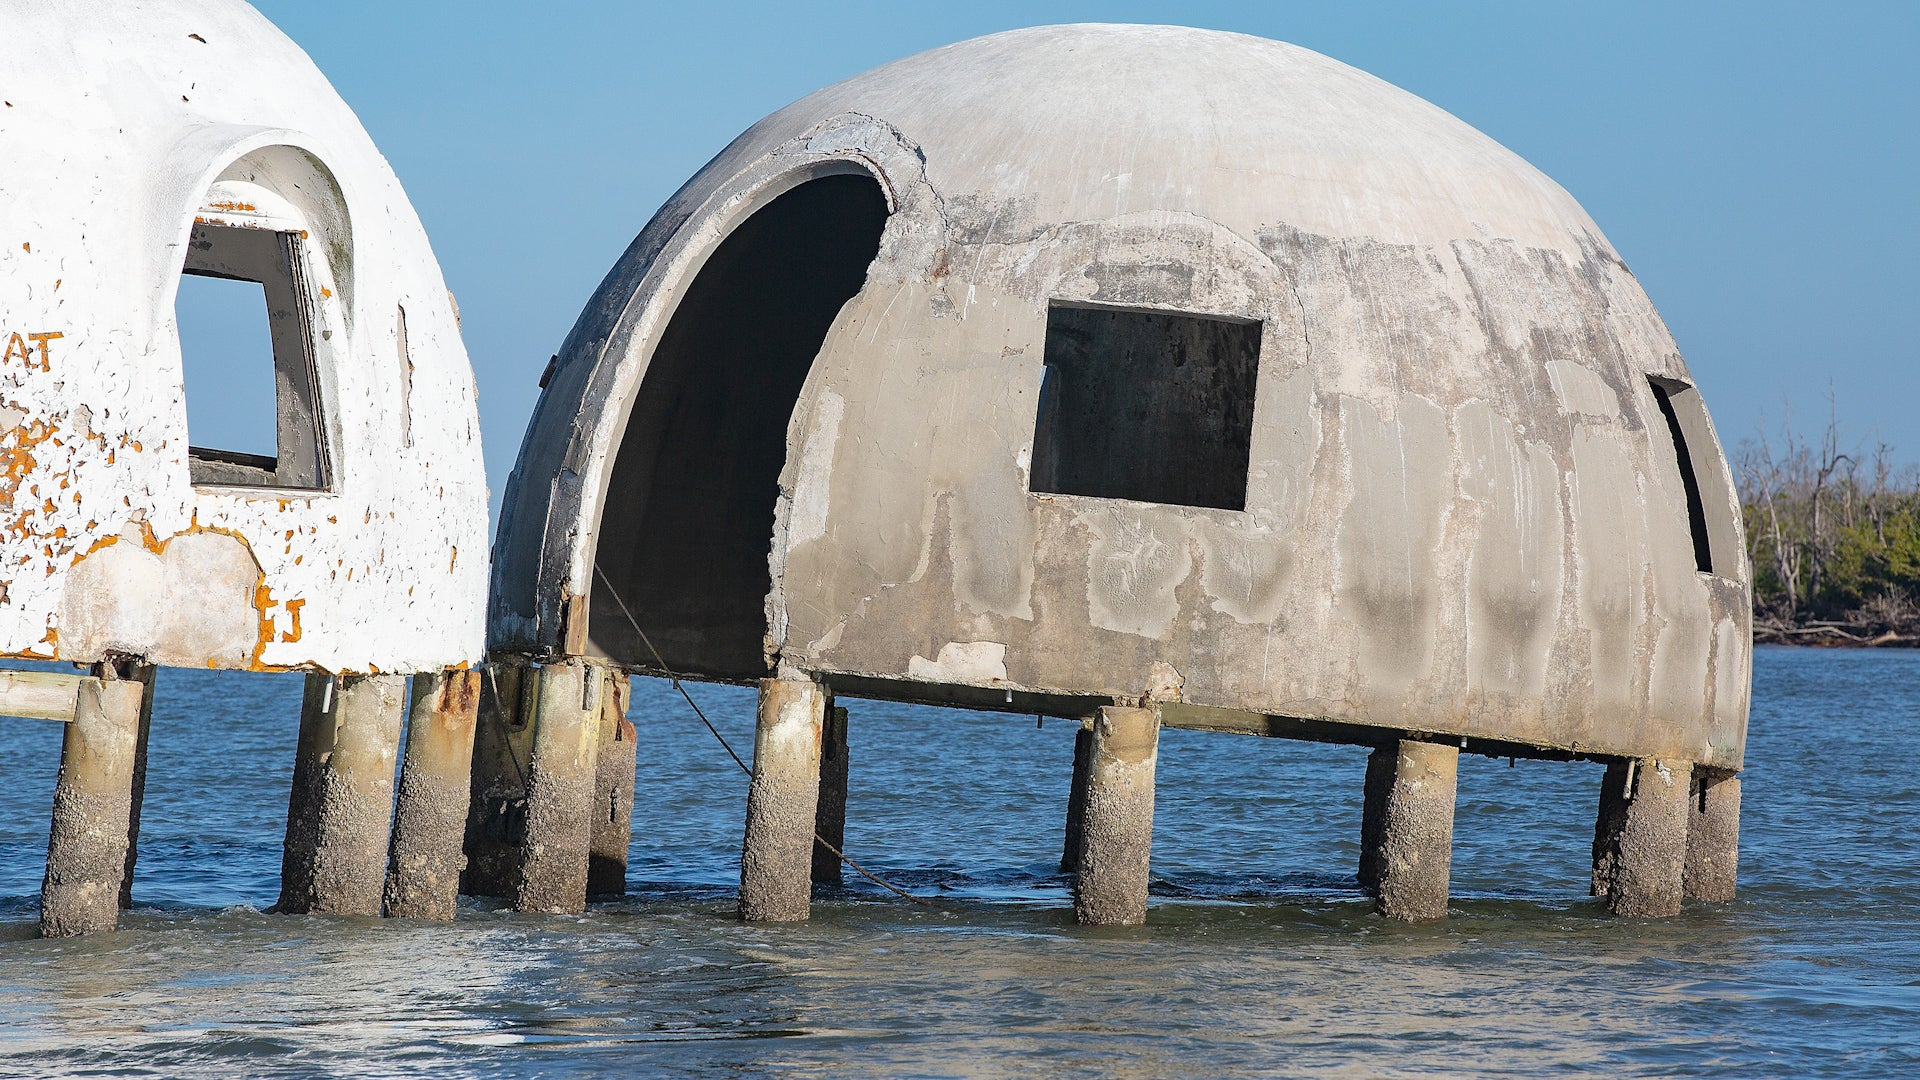 The mysterious and iconic dome home on Marco Island in Cape Romano off the coast of Florida is getting claimed by the ocean.